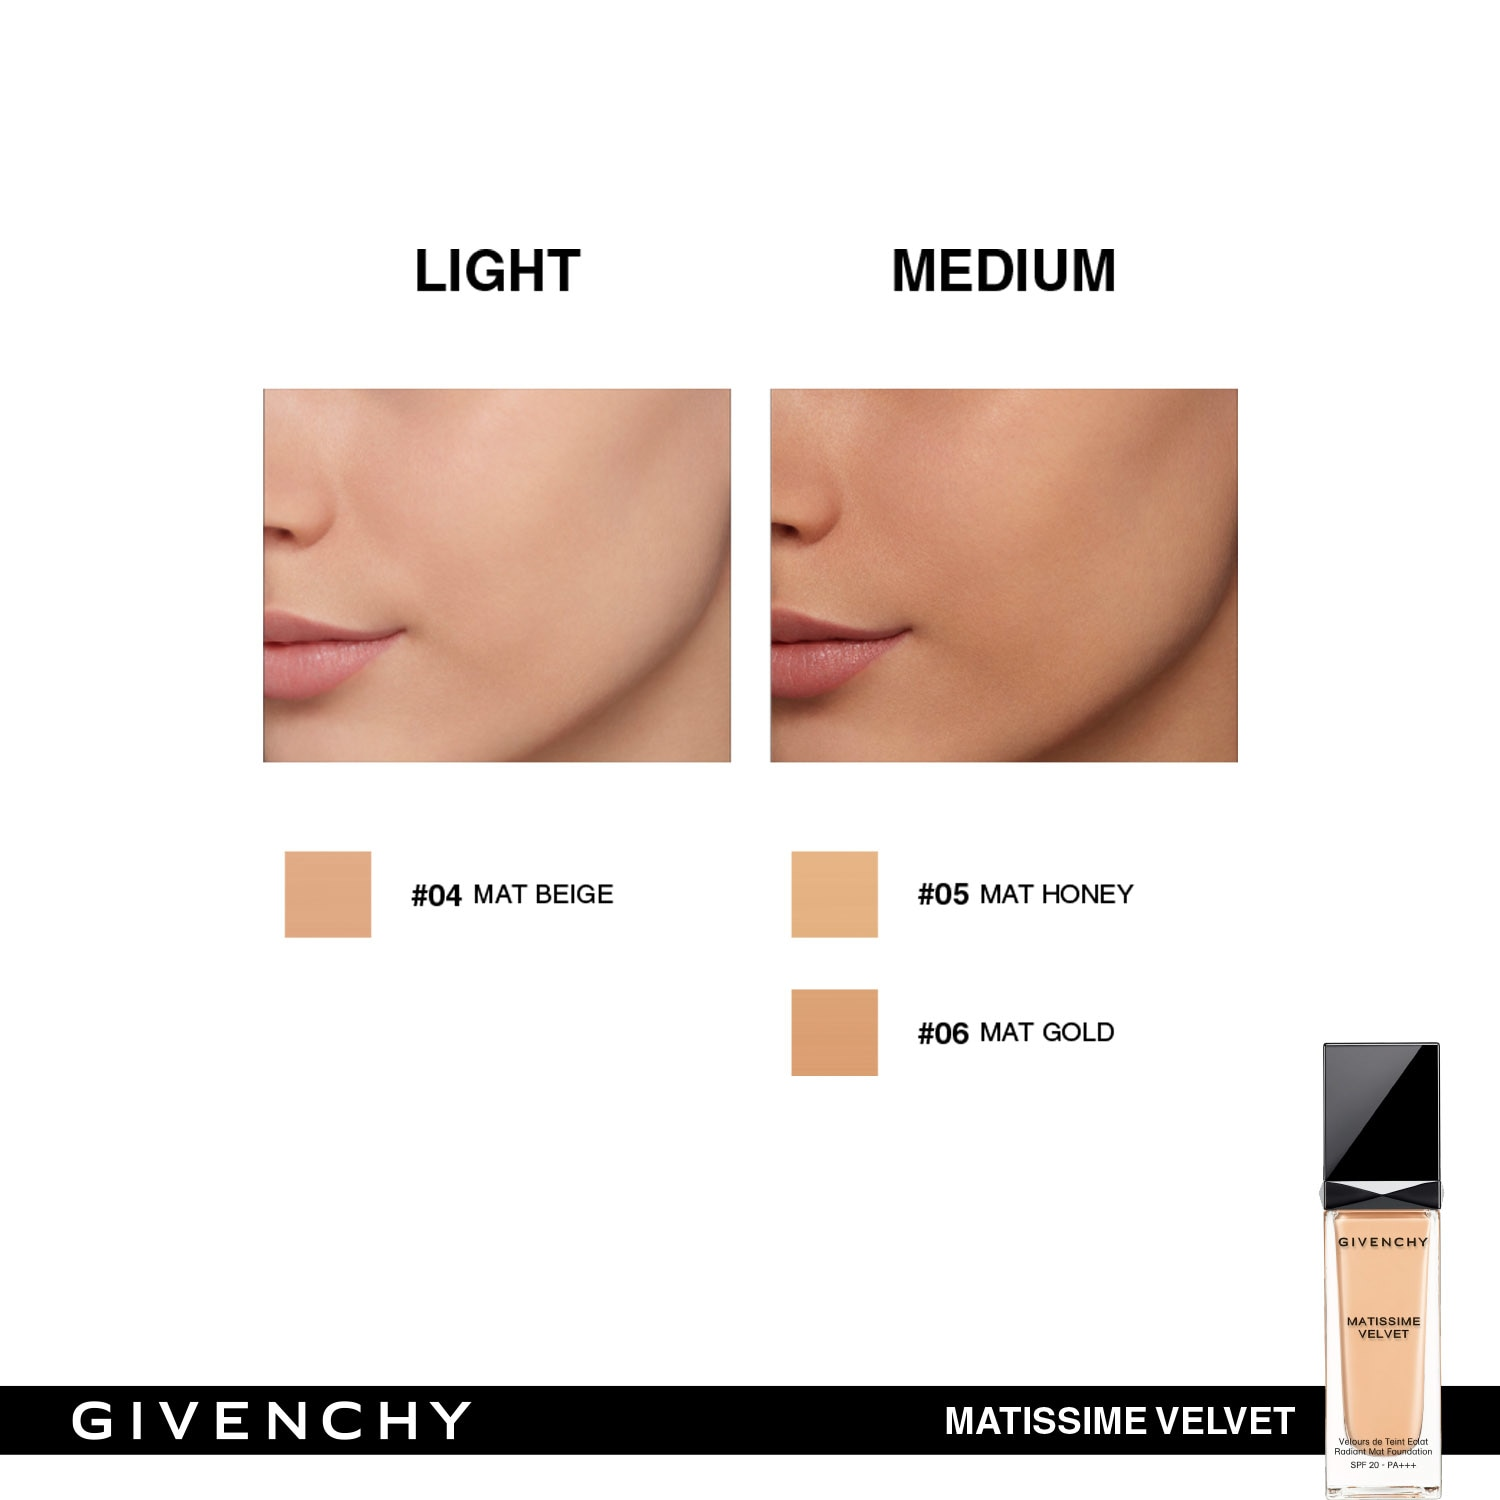 MATISSIME VELVET FOUNDATION SPF 20 (BASE DE MAQUILLAJE SEMI-MATE)